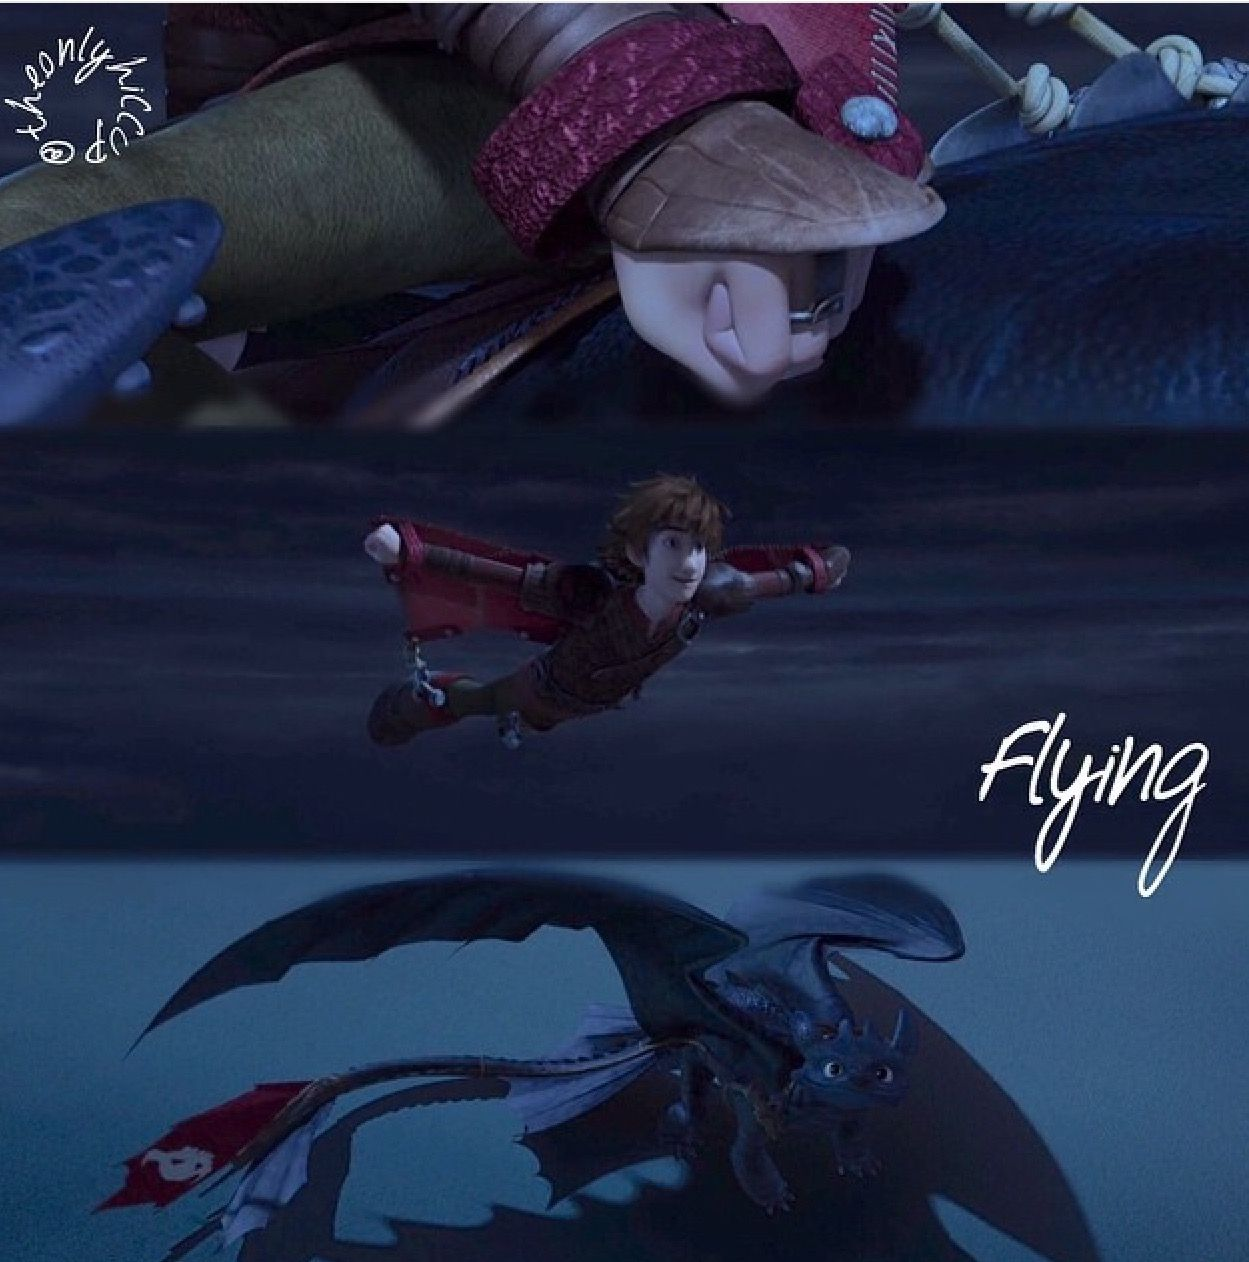 Characters of dreamworks d dreamworks animation photo pictures to pin - Animation Hiccup Flying Xd D _ Dreamworks